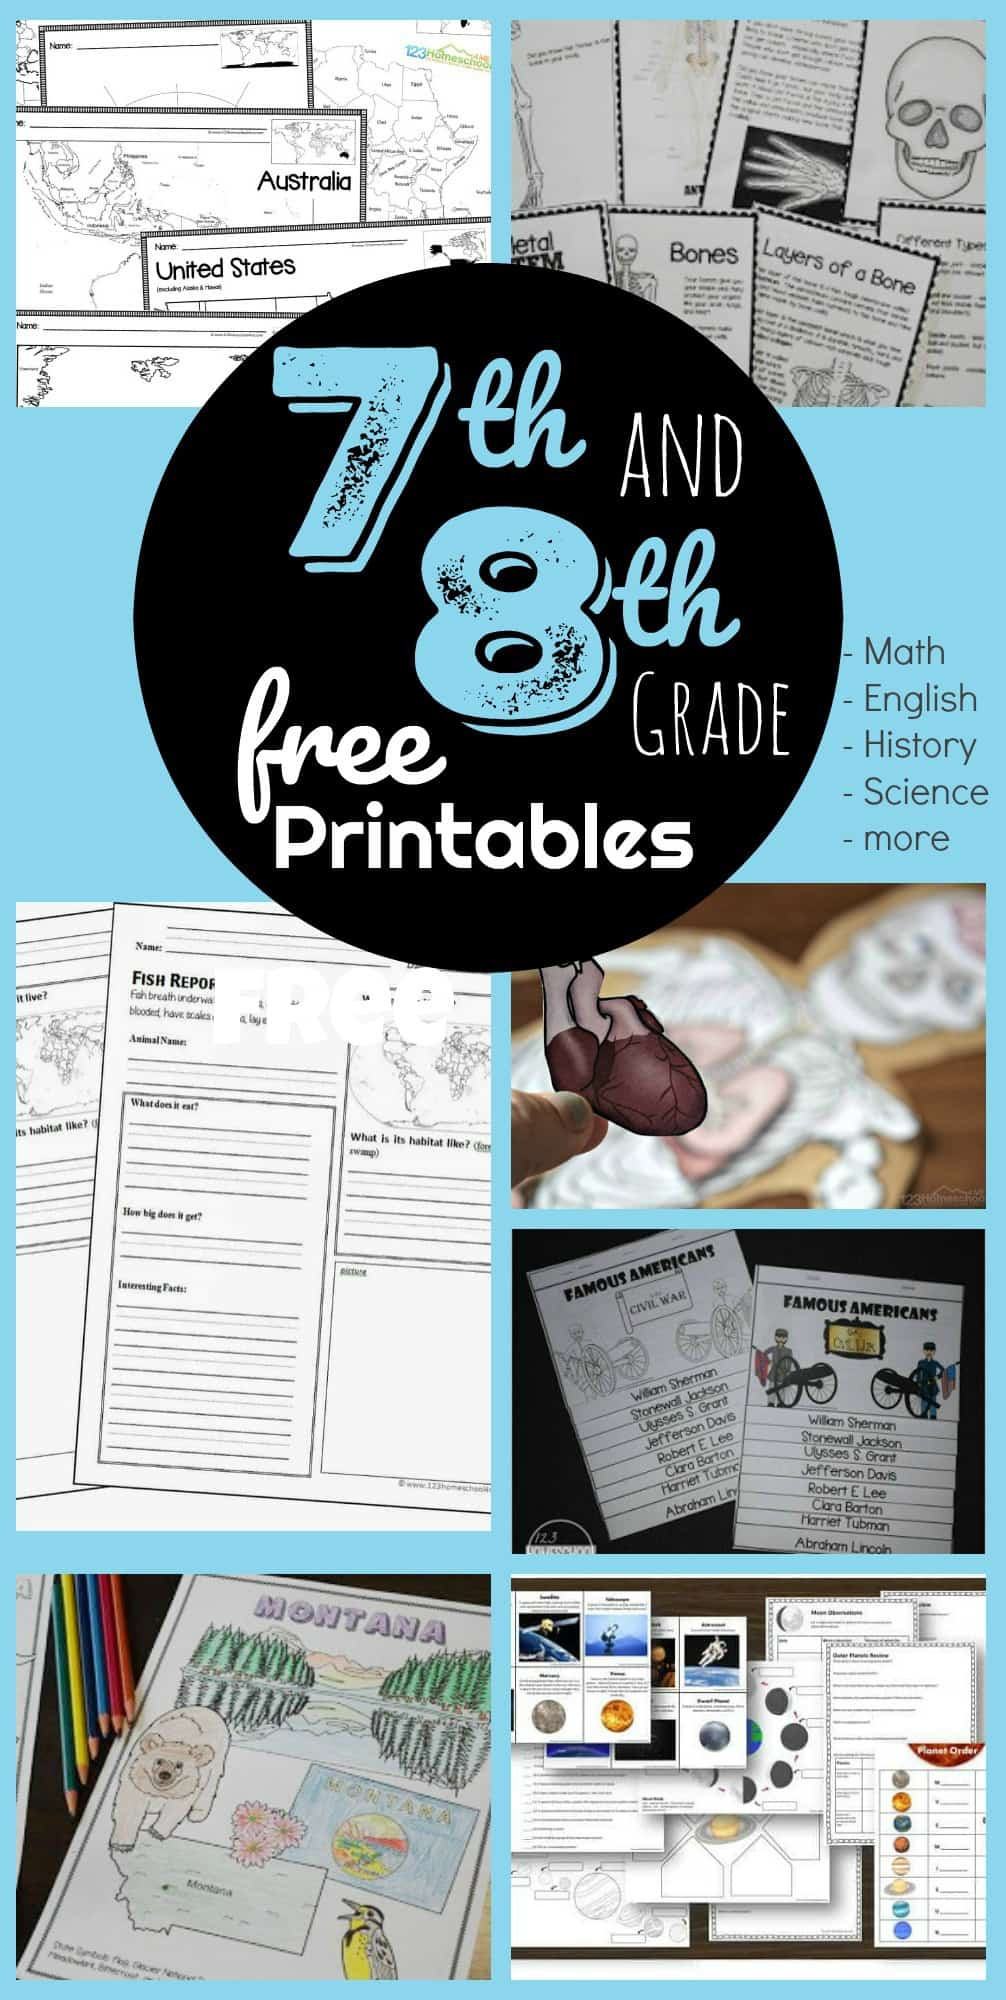 7th Grade History Worksheets Free 7th & 8th Grade Worksheets